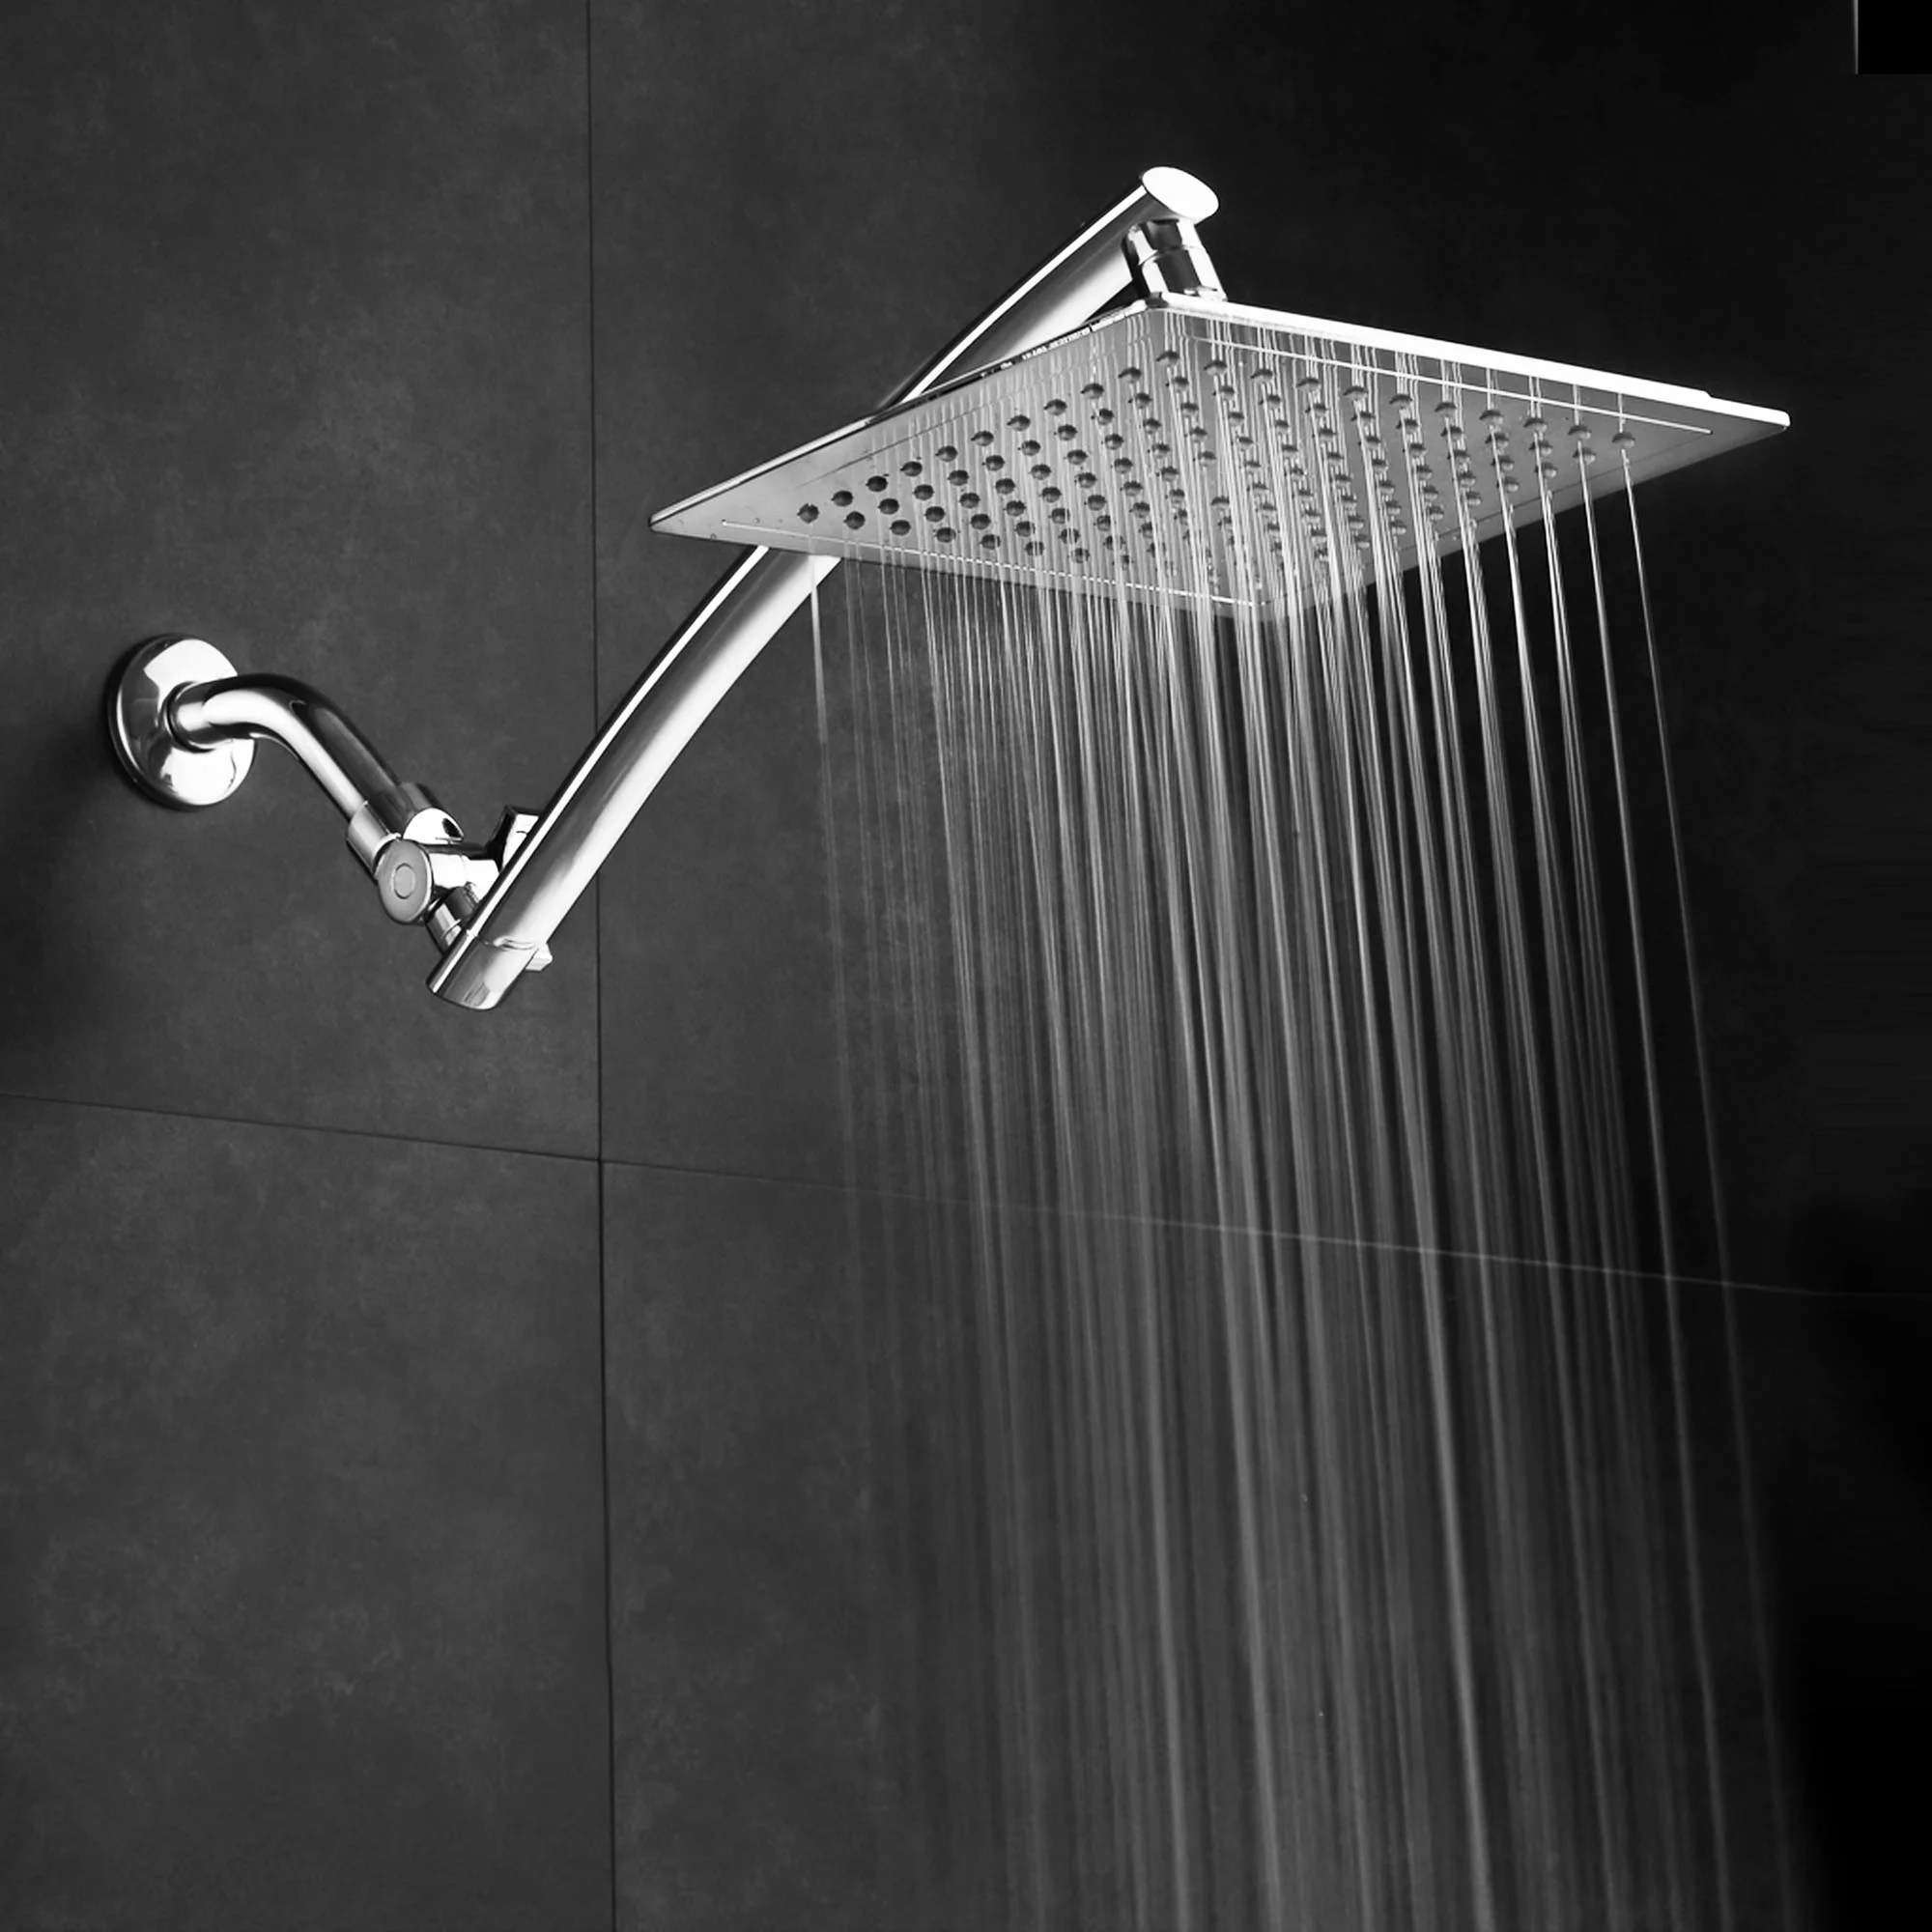 Razor By Aquaspa Mega Size 9 Inch Chrome Face Square Rainfall Shower With Arch Design 15 Inch Stainless Steel Extension Arm Premium Chrome